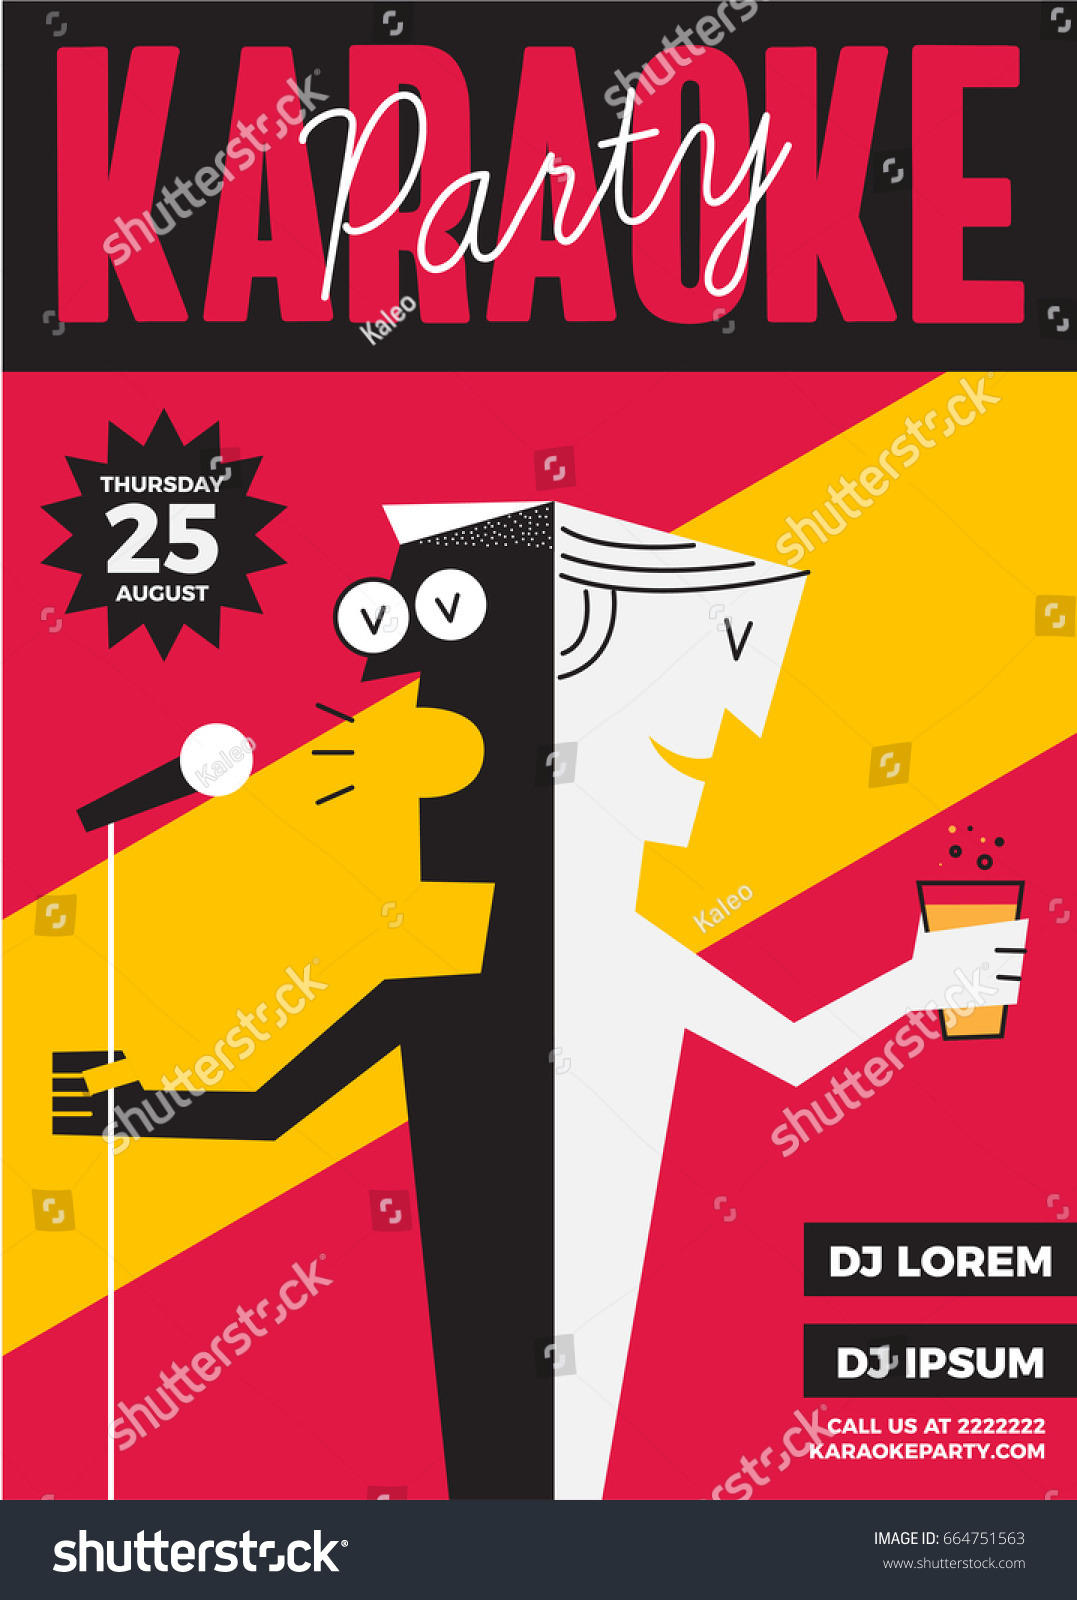 Karaoke Party Invitation Poster Design Text Stock Vector 664751563 ...